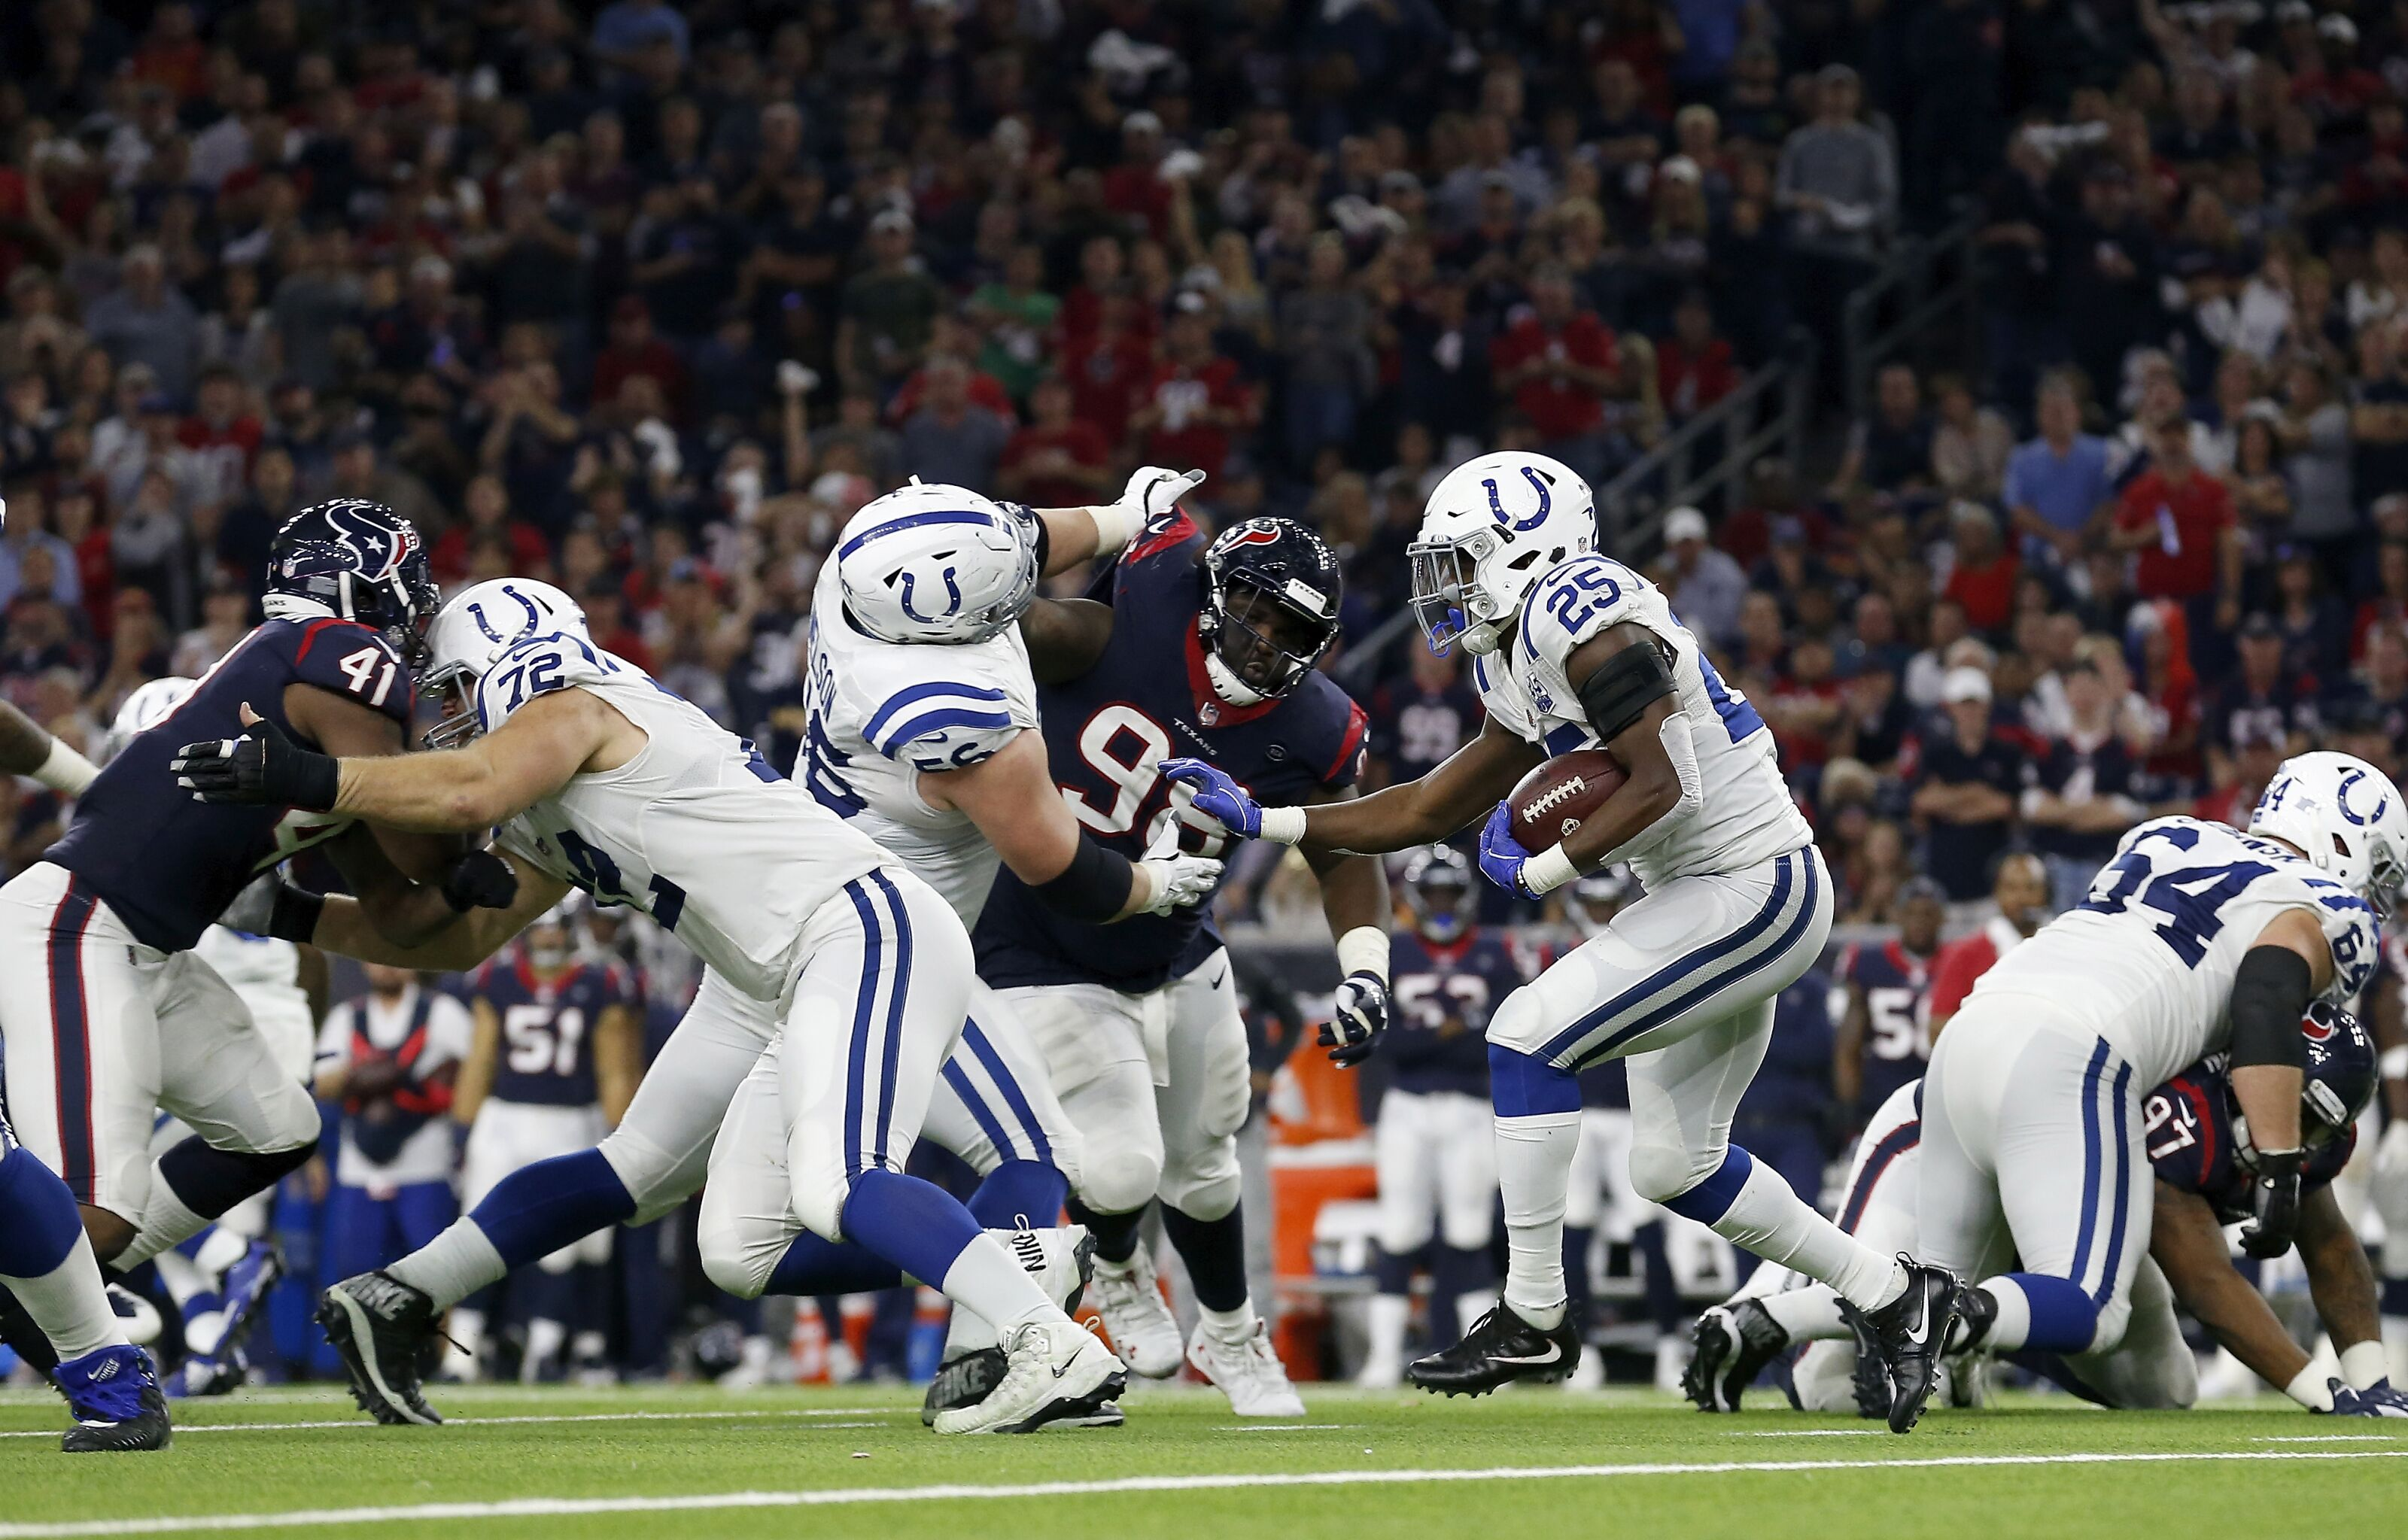 Colts rushing attack is the key to beating Texans Sunday